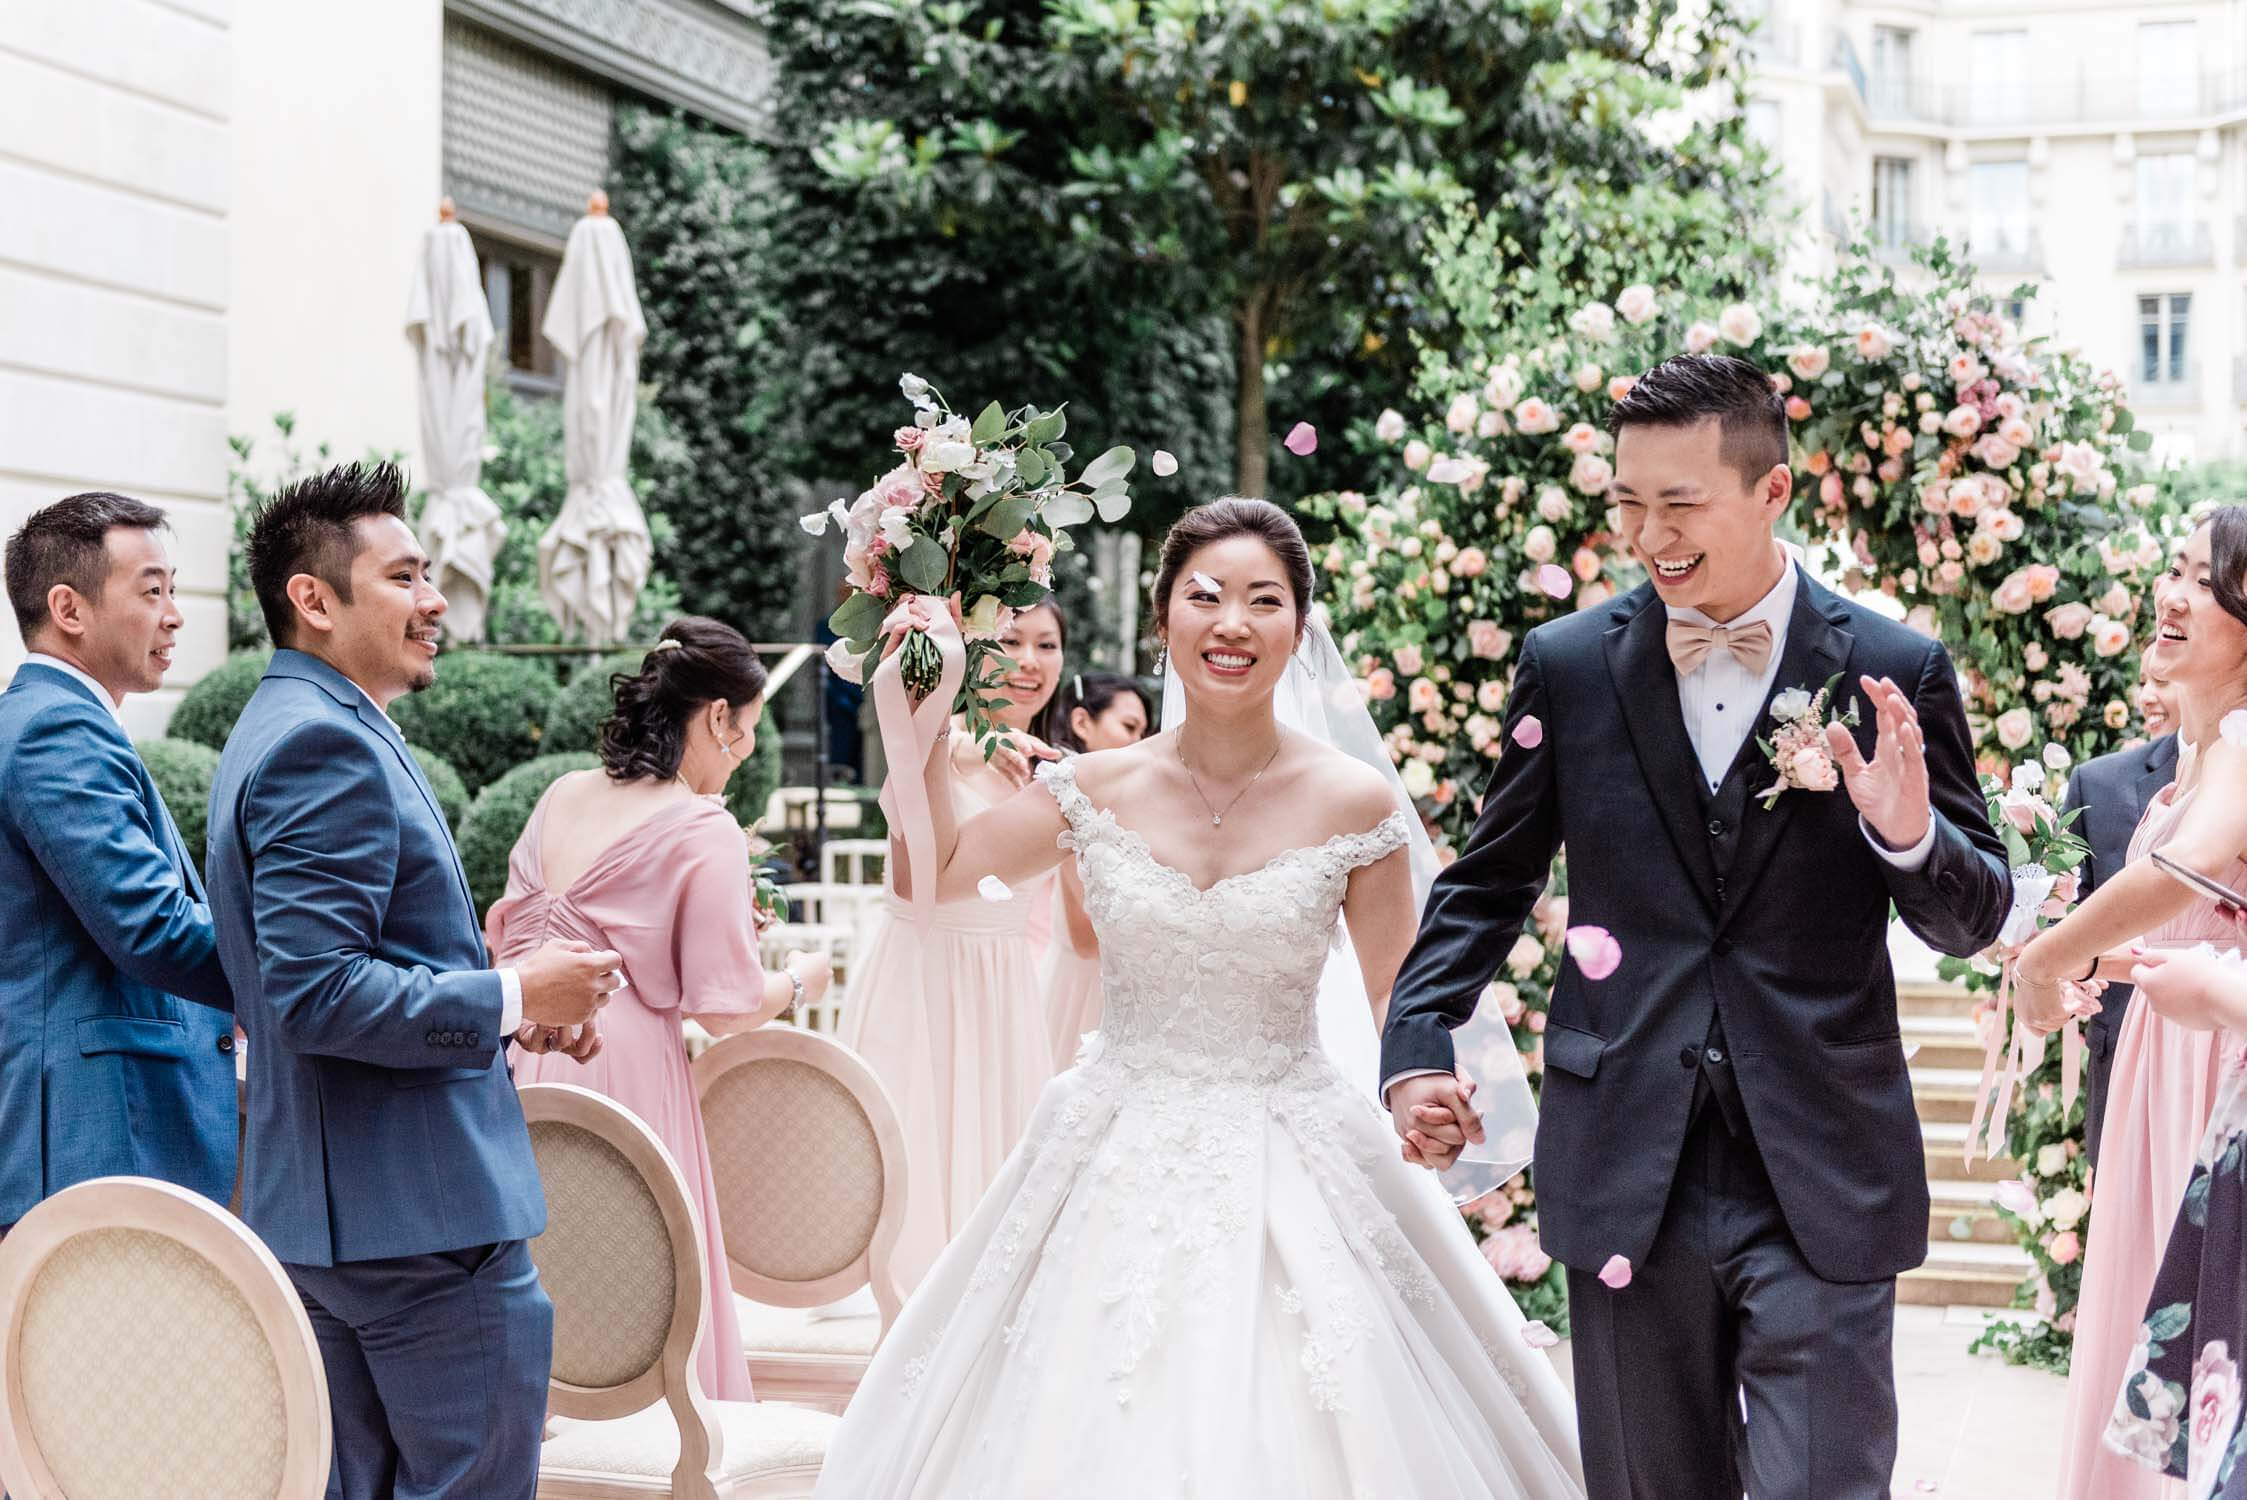 A bride and groom come out of their luxury elopement at the Ritz Hotel in Paris